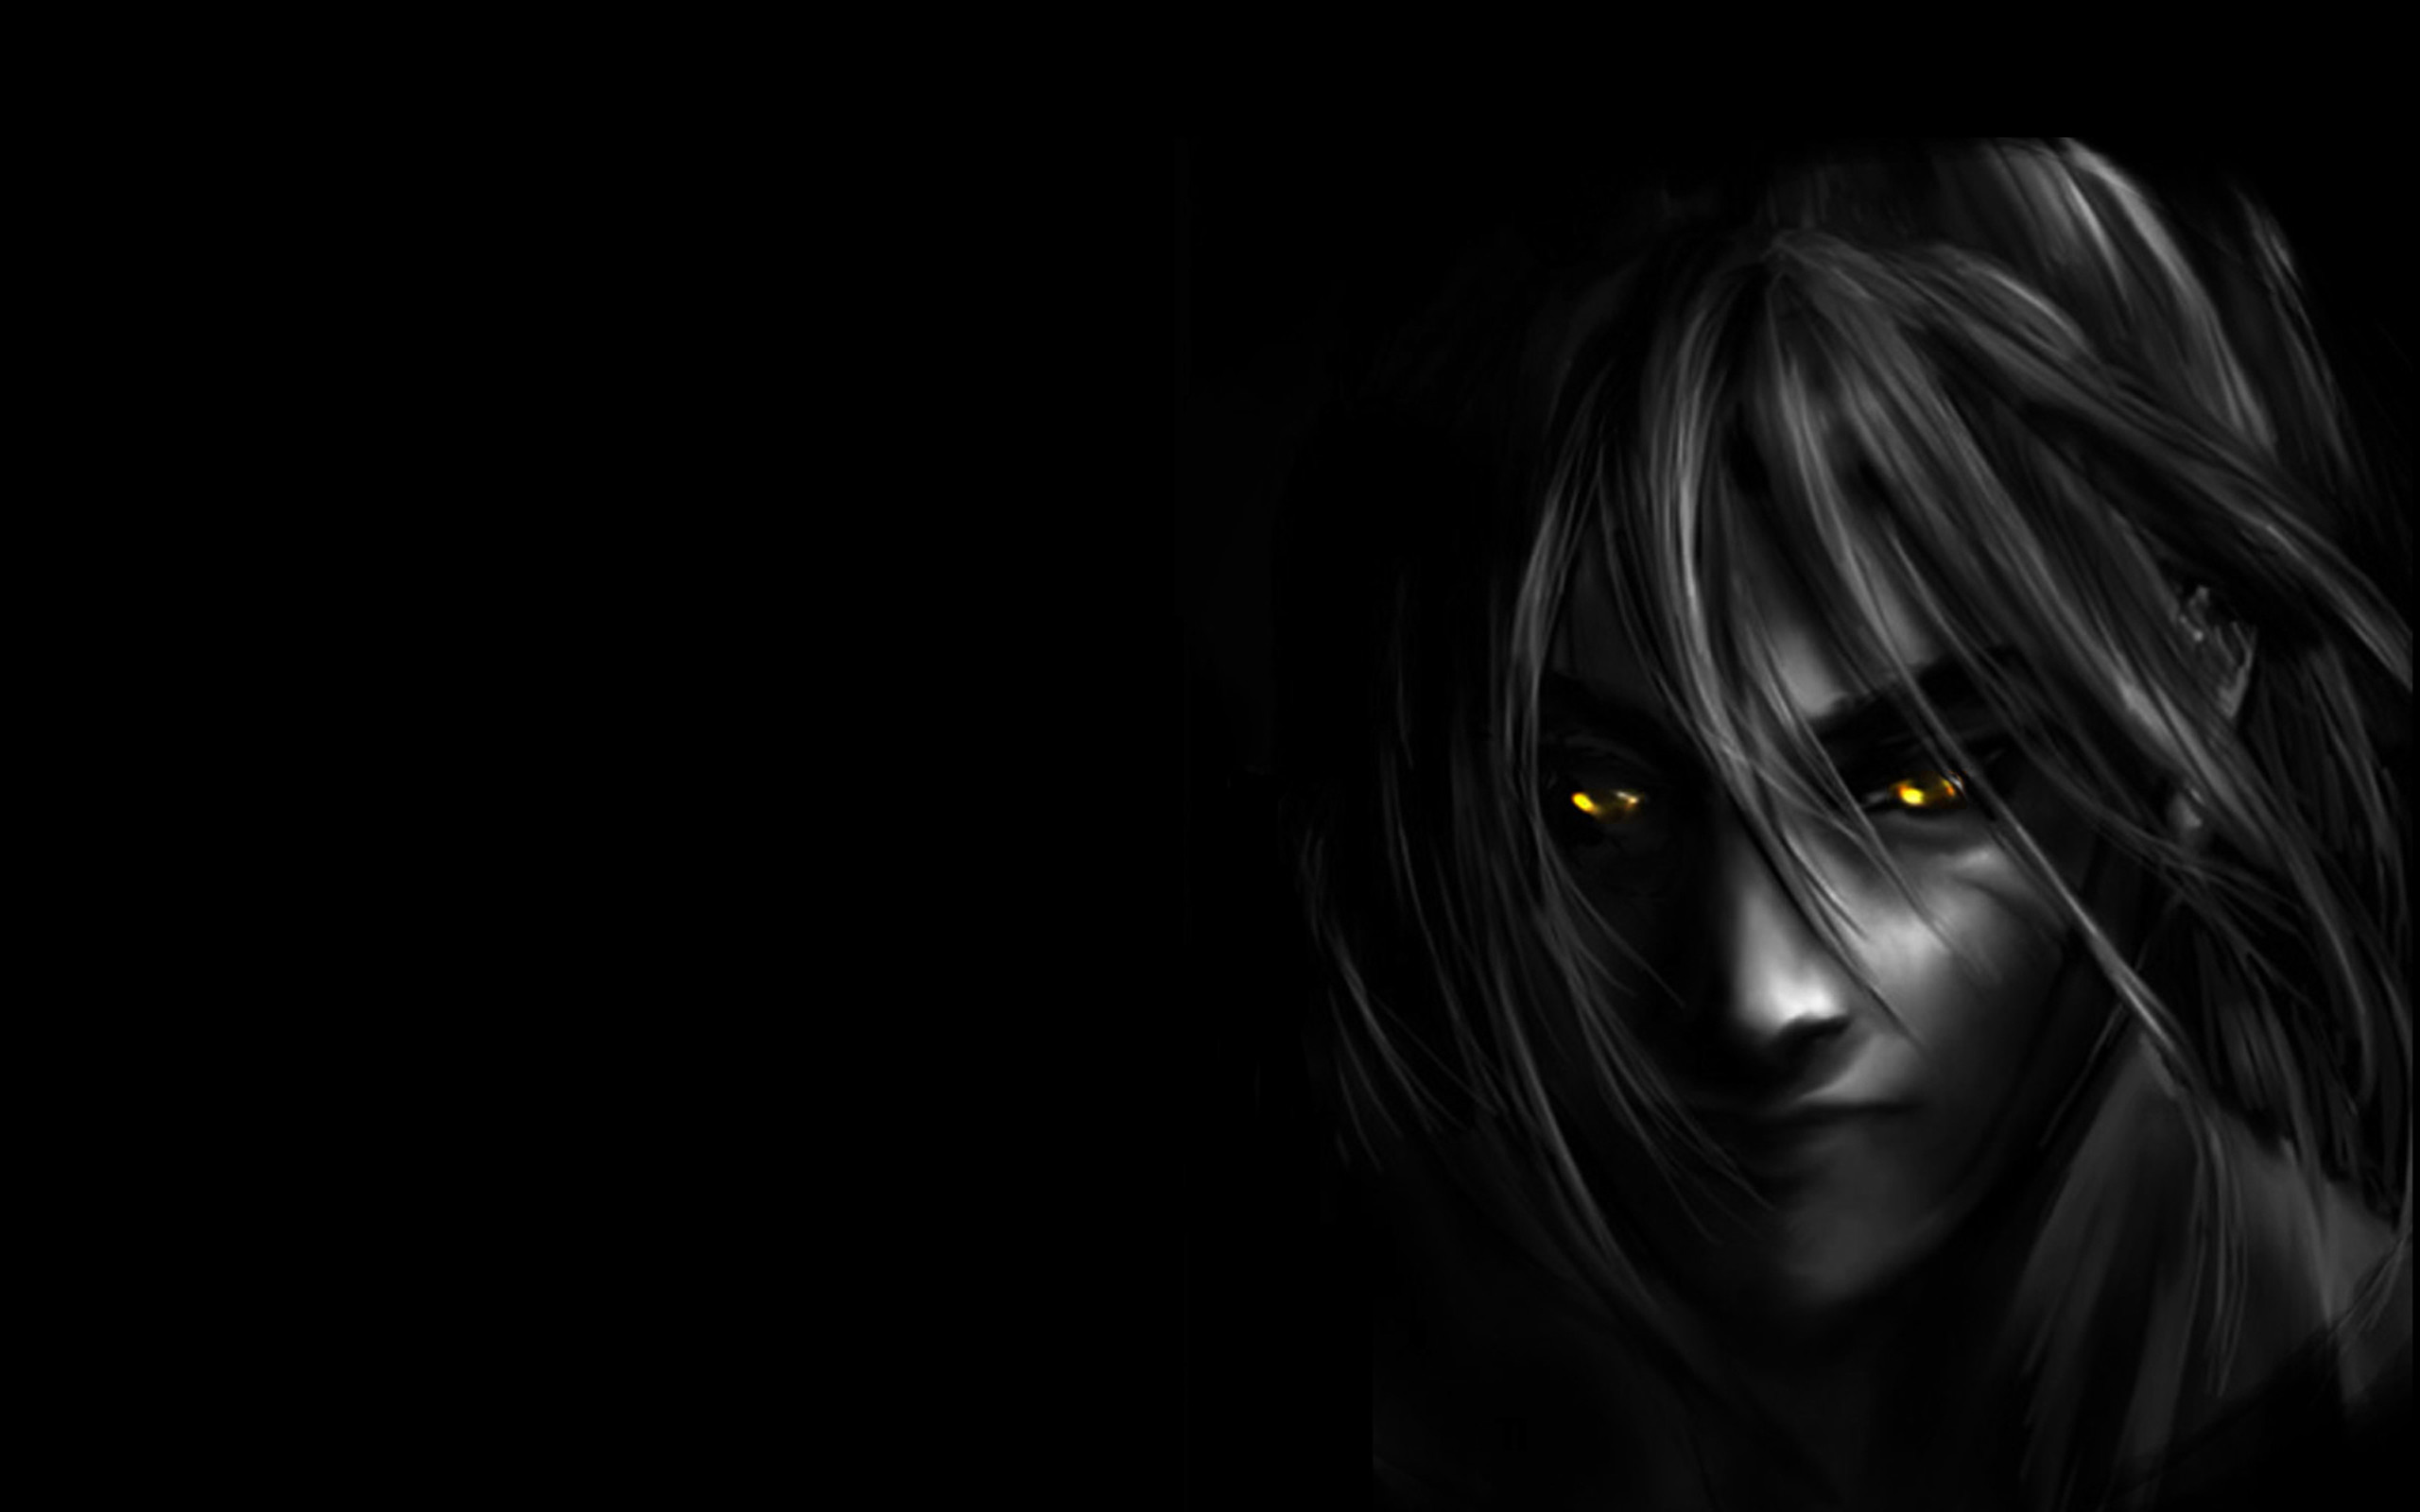 Explore Dark Art Paintings, Gothic Anime, and more!